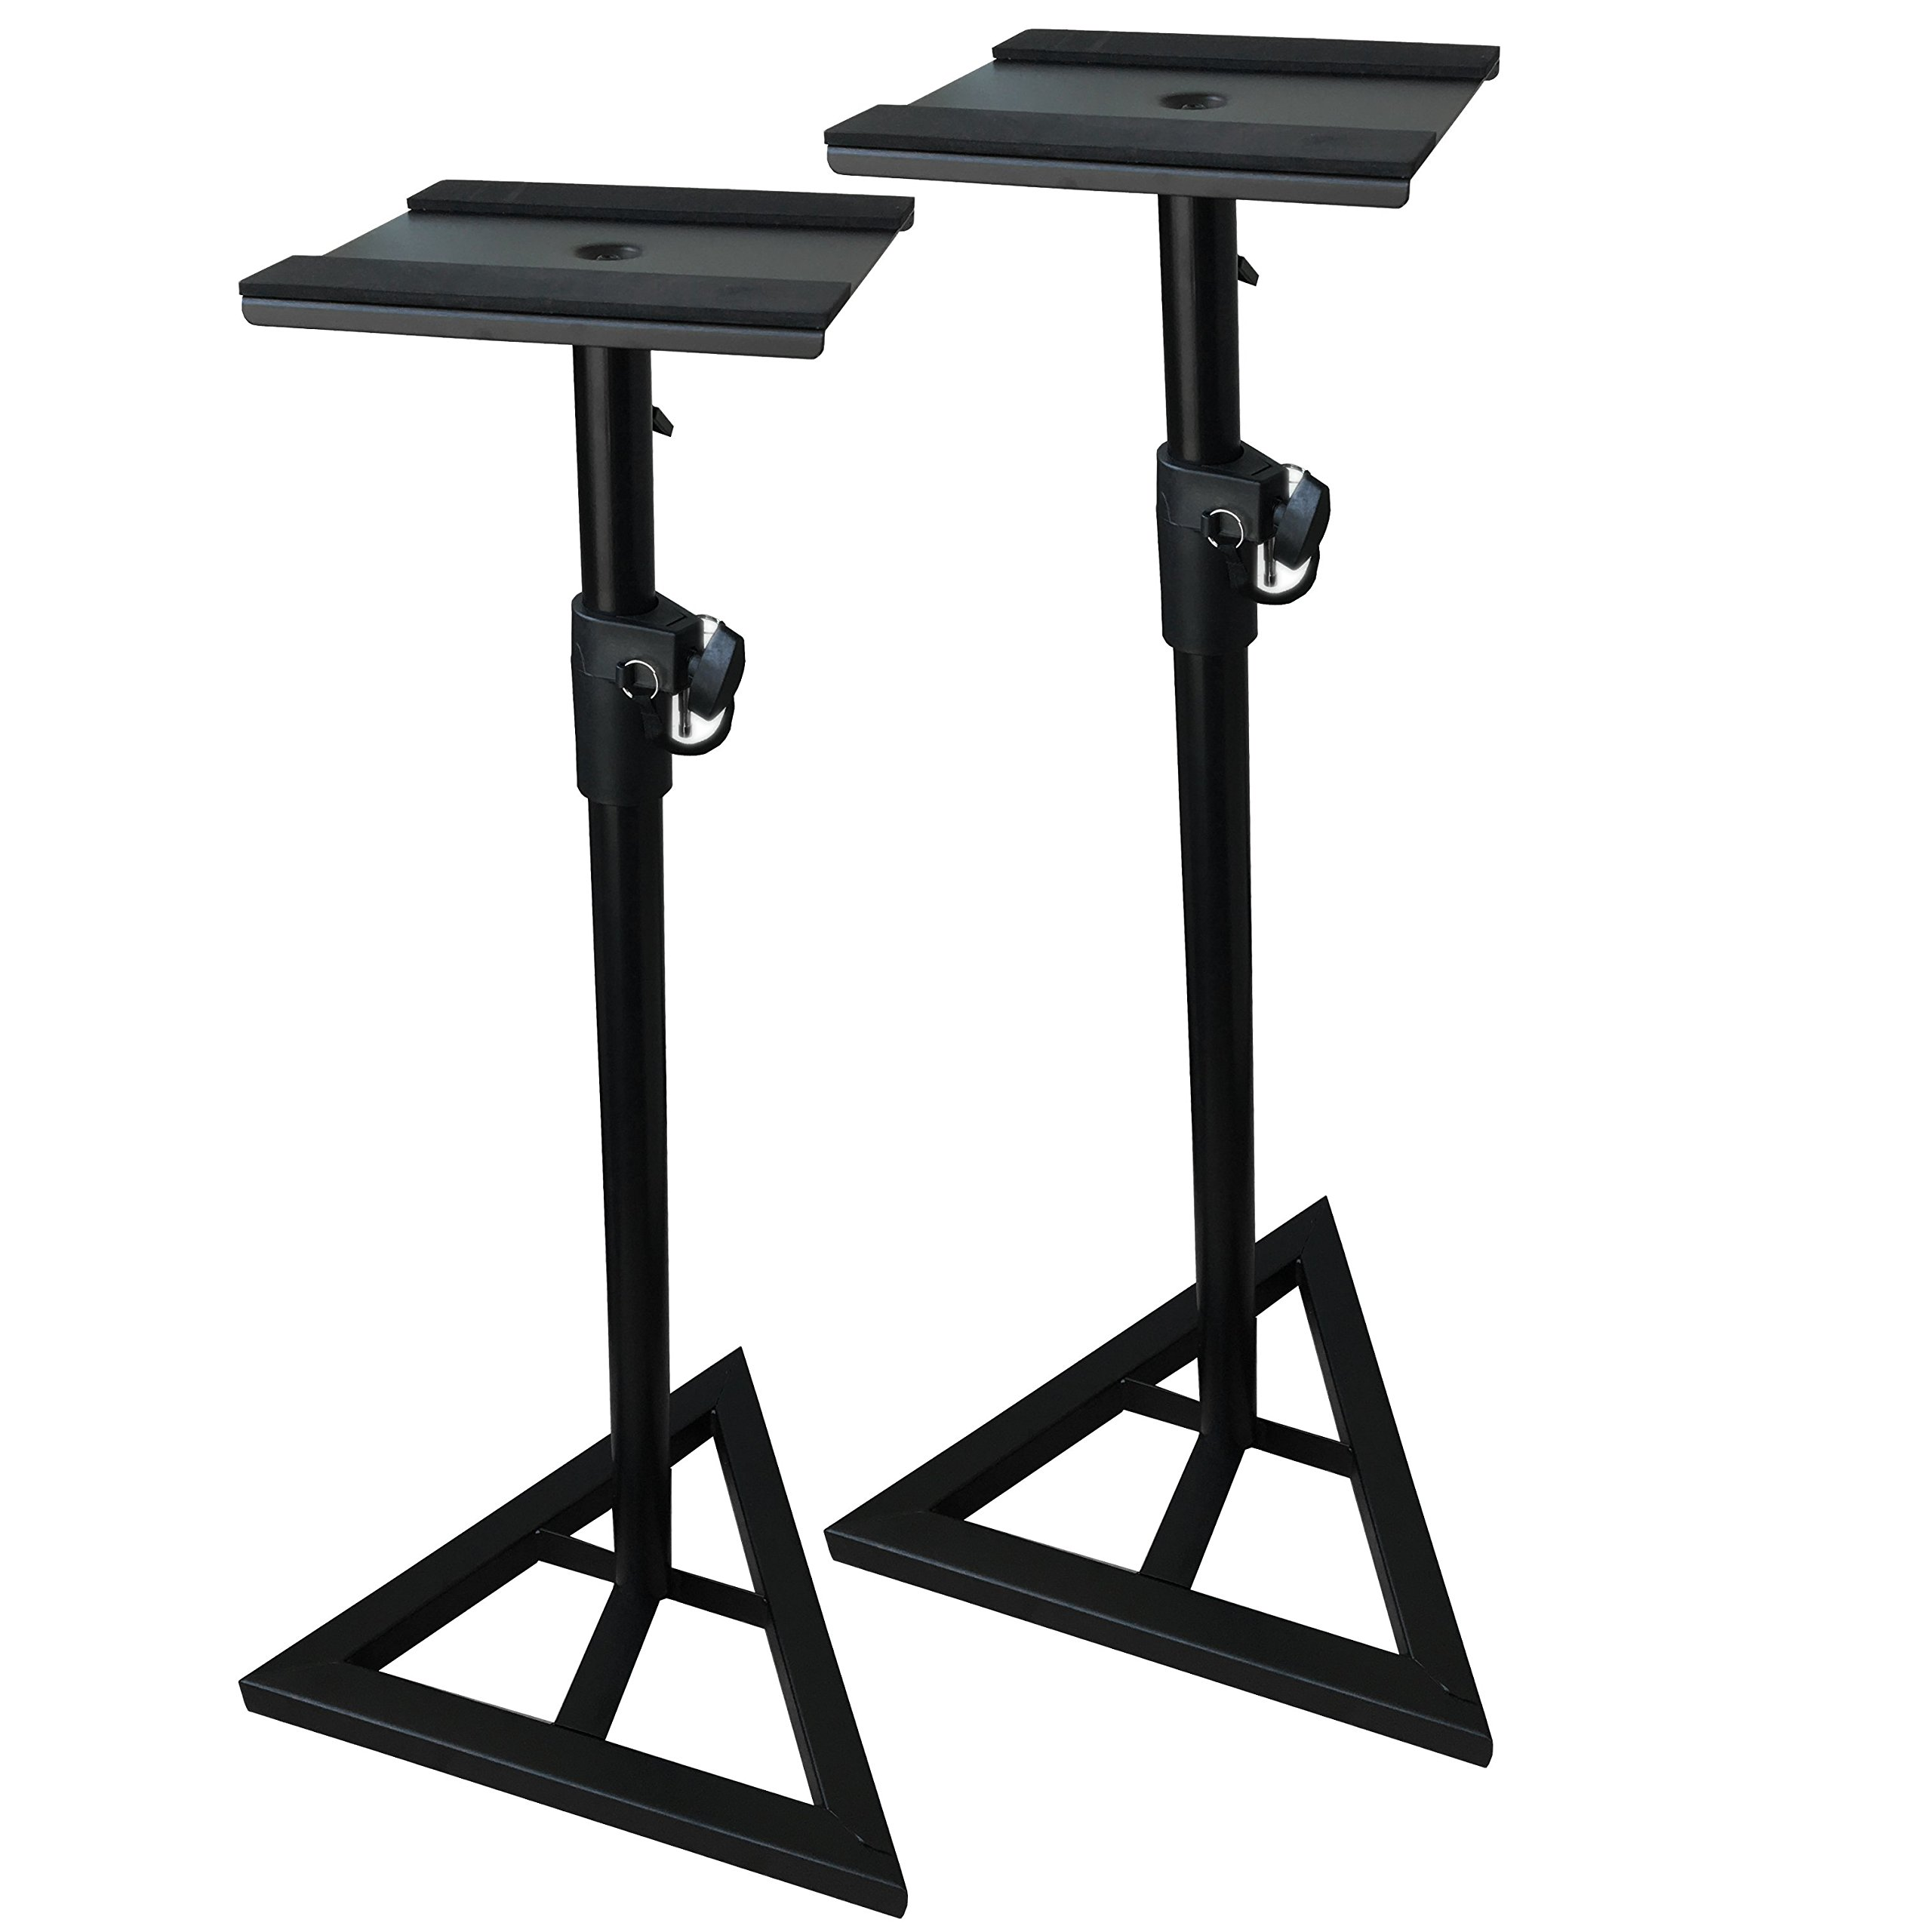 EMB Professional Pair of SS07 Heavy Duty Studio Monitor Speaker Stands w/Height Adjustment/Set of 2 by EMB